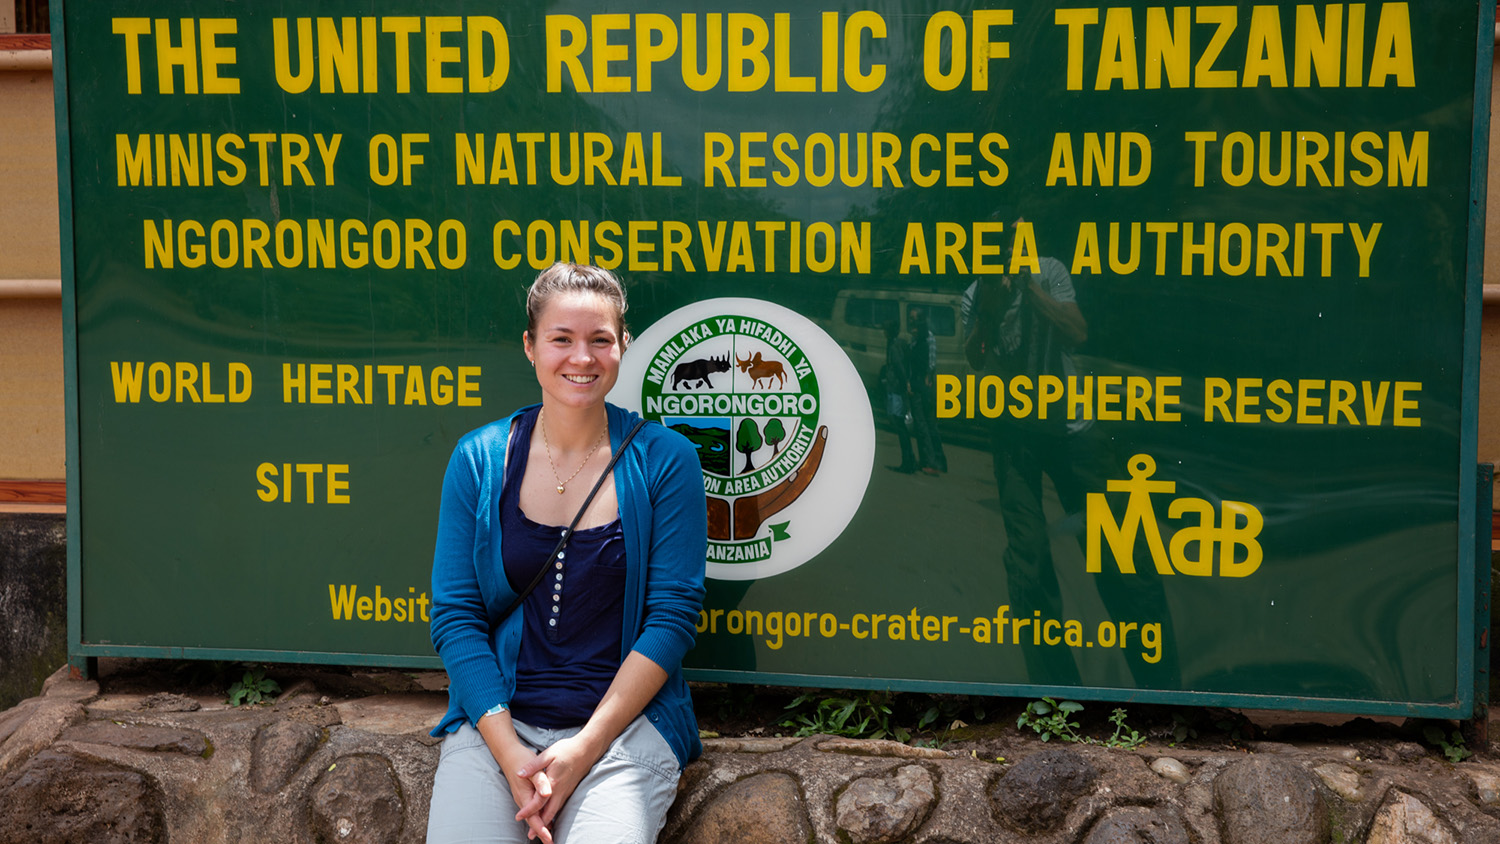 In front of the entrance to Ngorongoro conservation area.